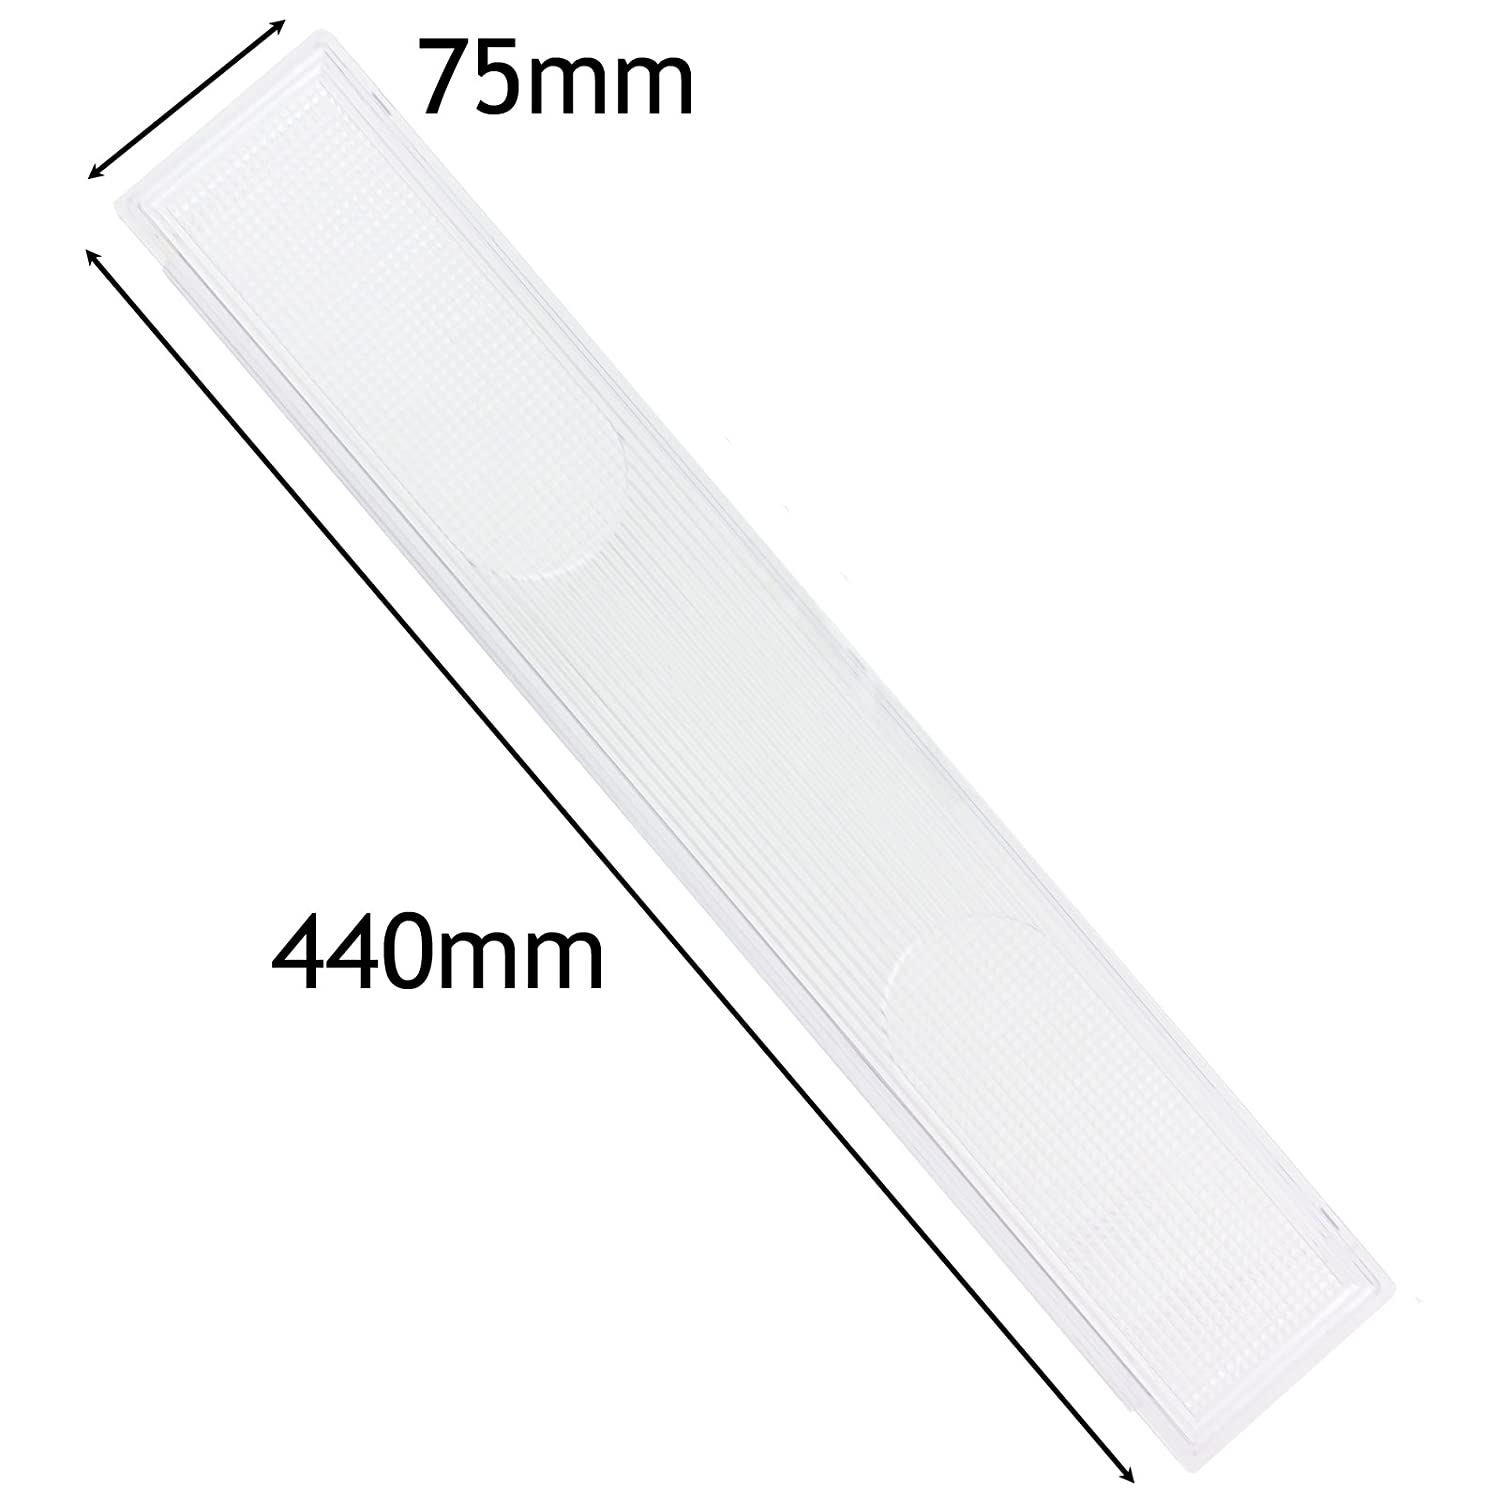 SPARES2GO Cooker Hood Light Diffuser/Lens Cover Plate (440mm x 75mm)